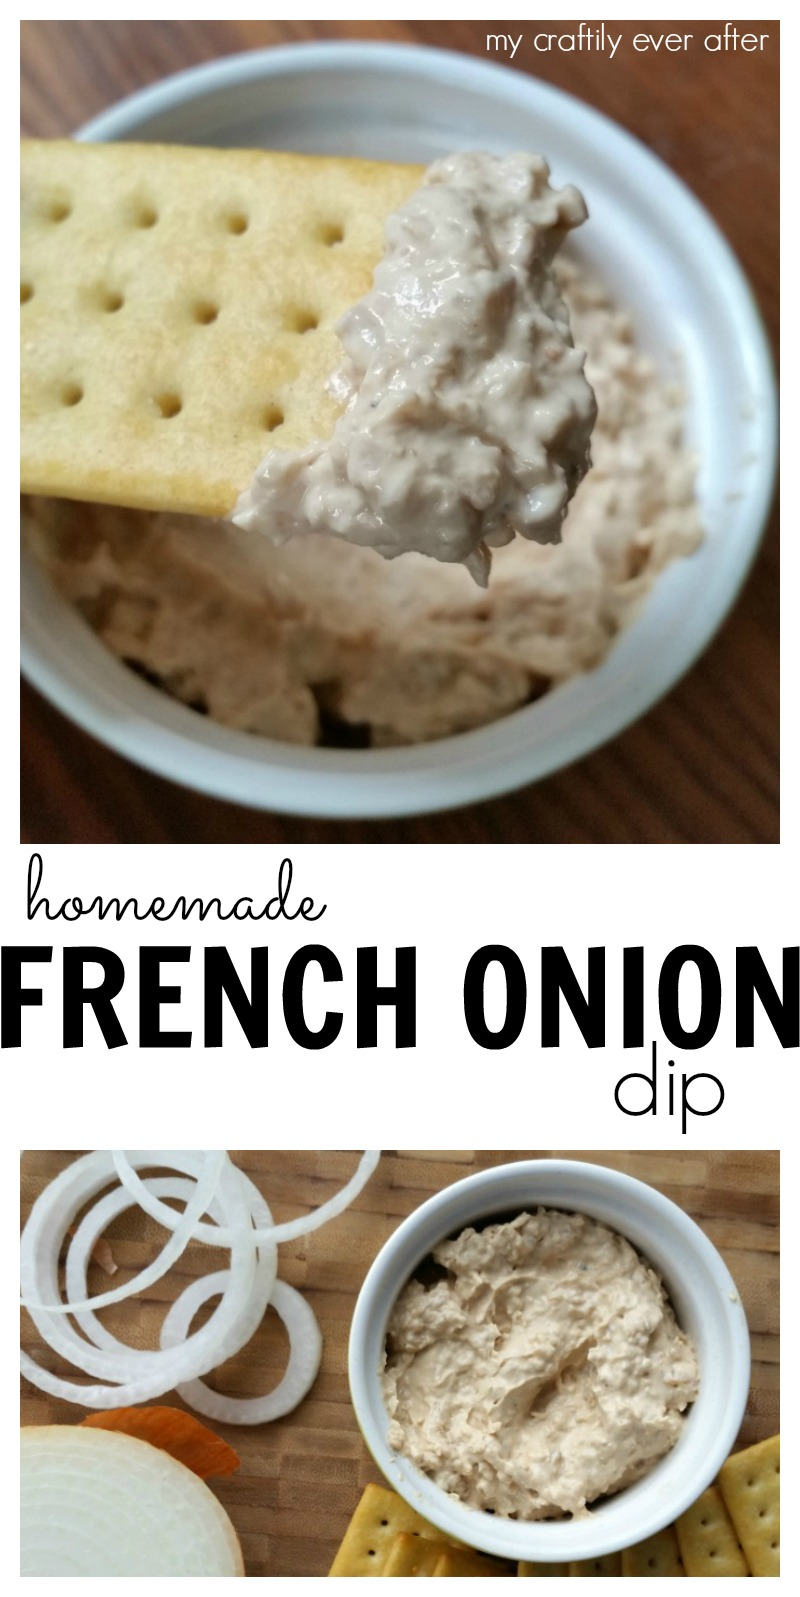 homemade-french-onion-dip-from-my-craftily-ever-after